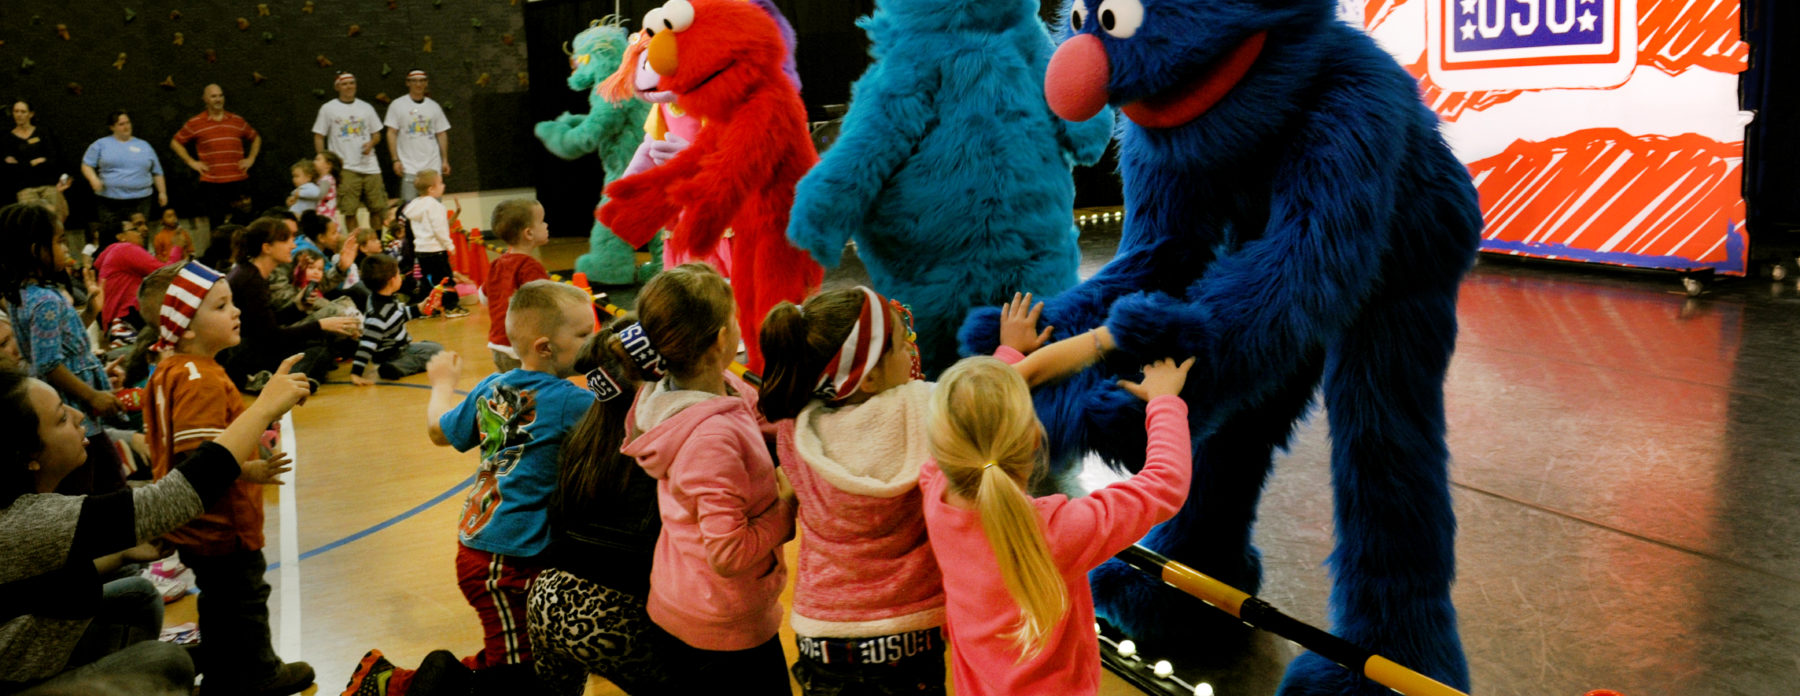 Hacking Sesame Street: Growing Our Next Cyber-Experts